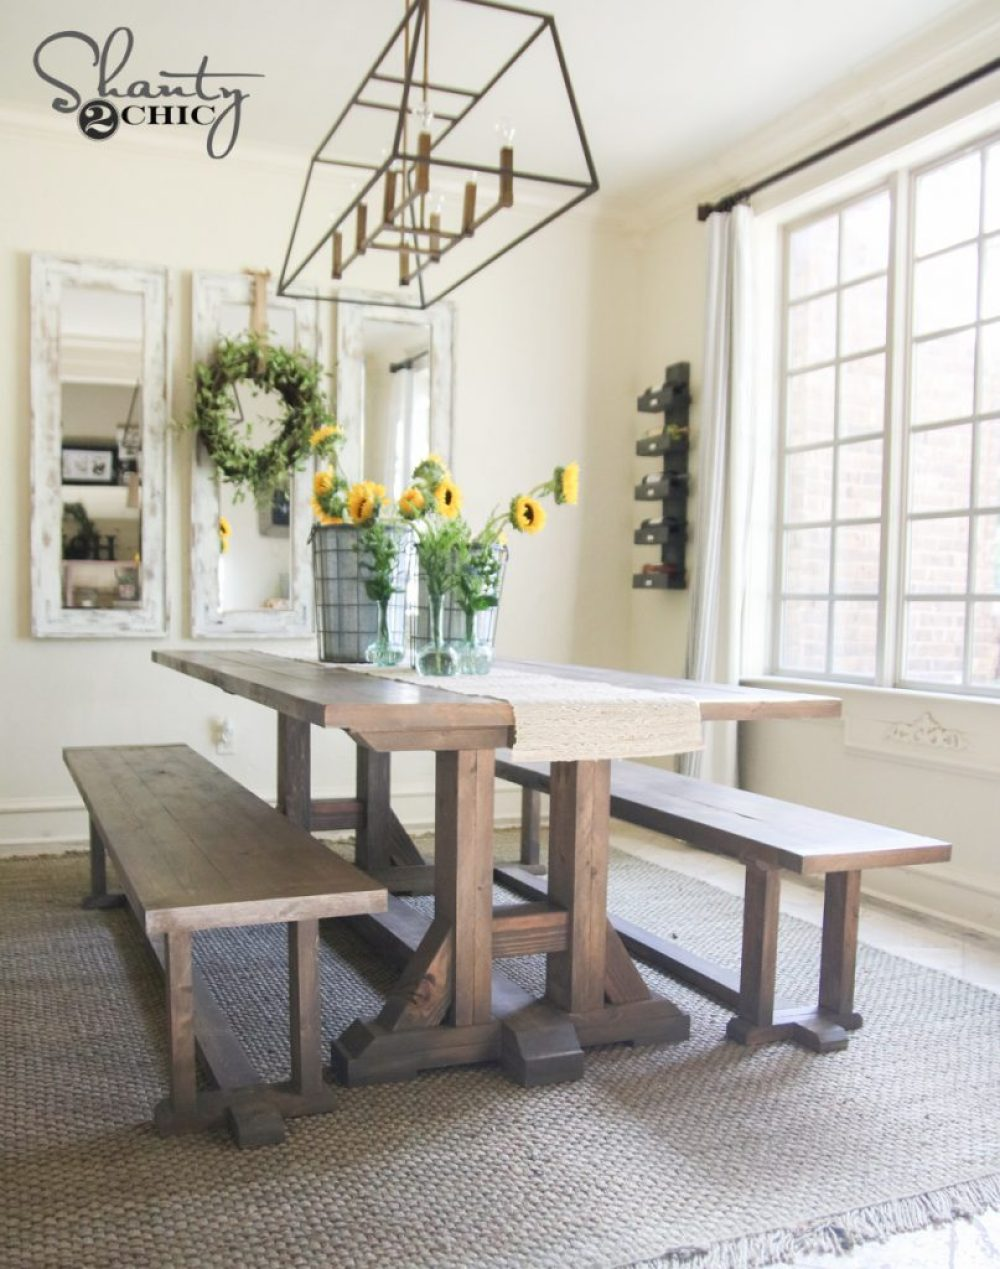 DIY Pottery Barn Inspired Dining Table for $5 - Shanty 5 Chic